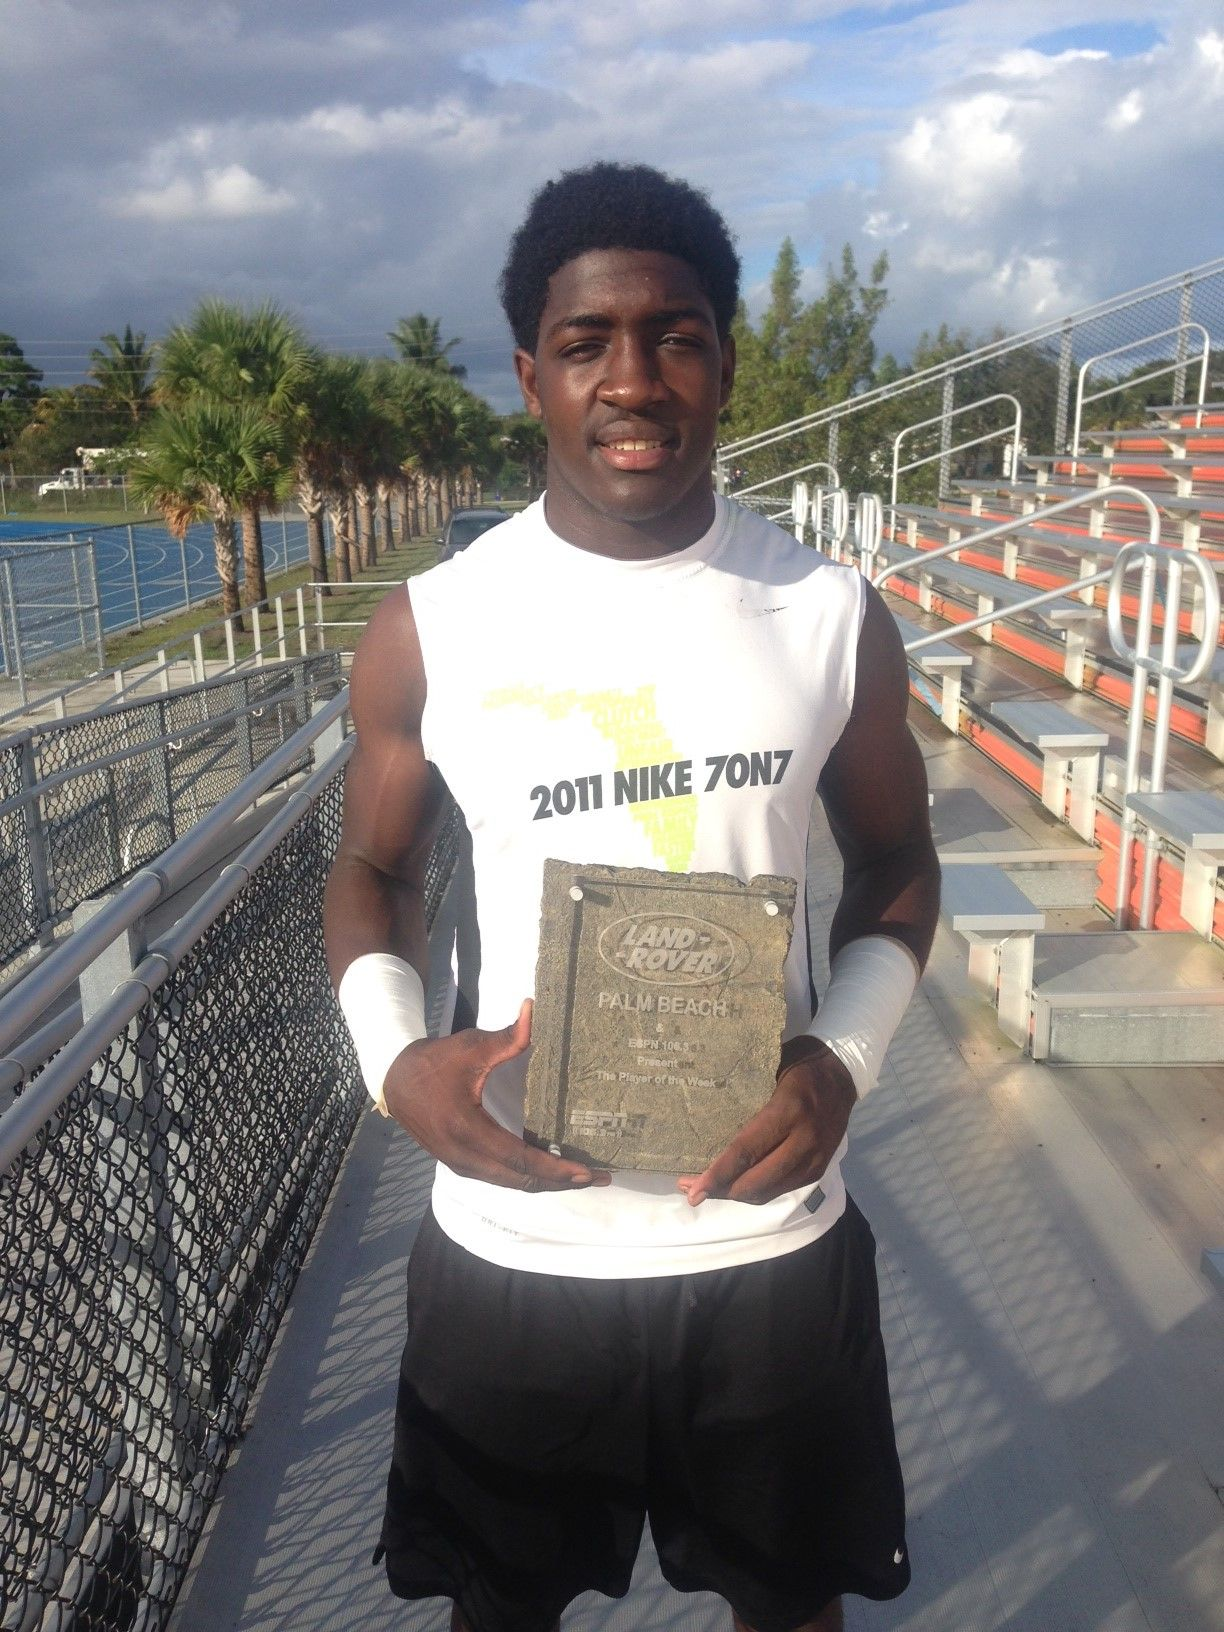 Land Rover Player the Week Player Tevon Coney School Palm